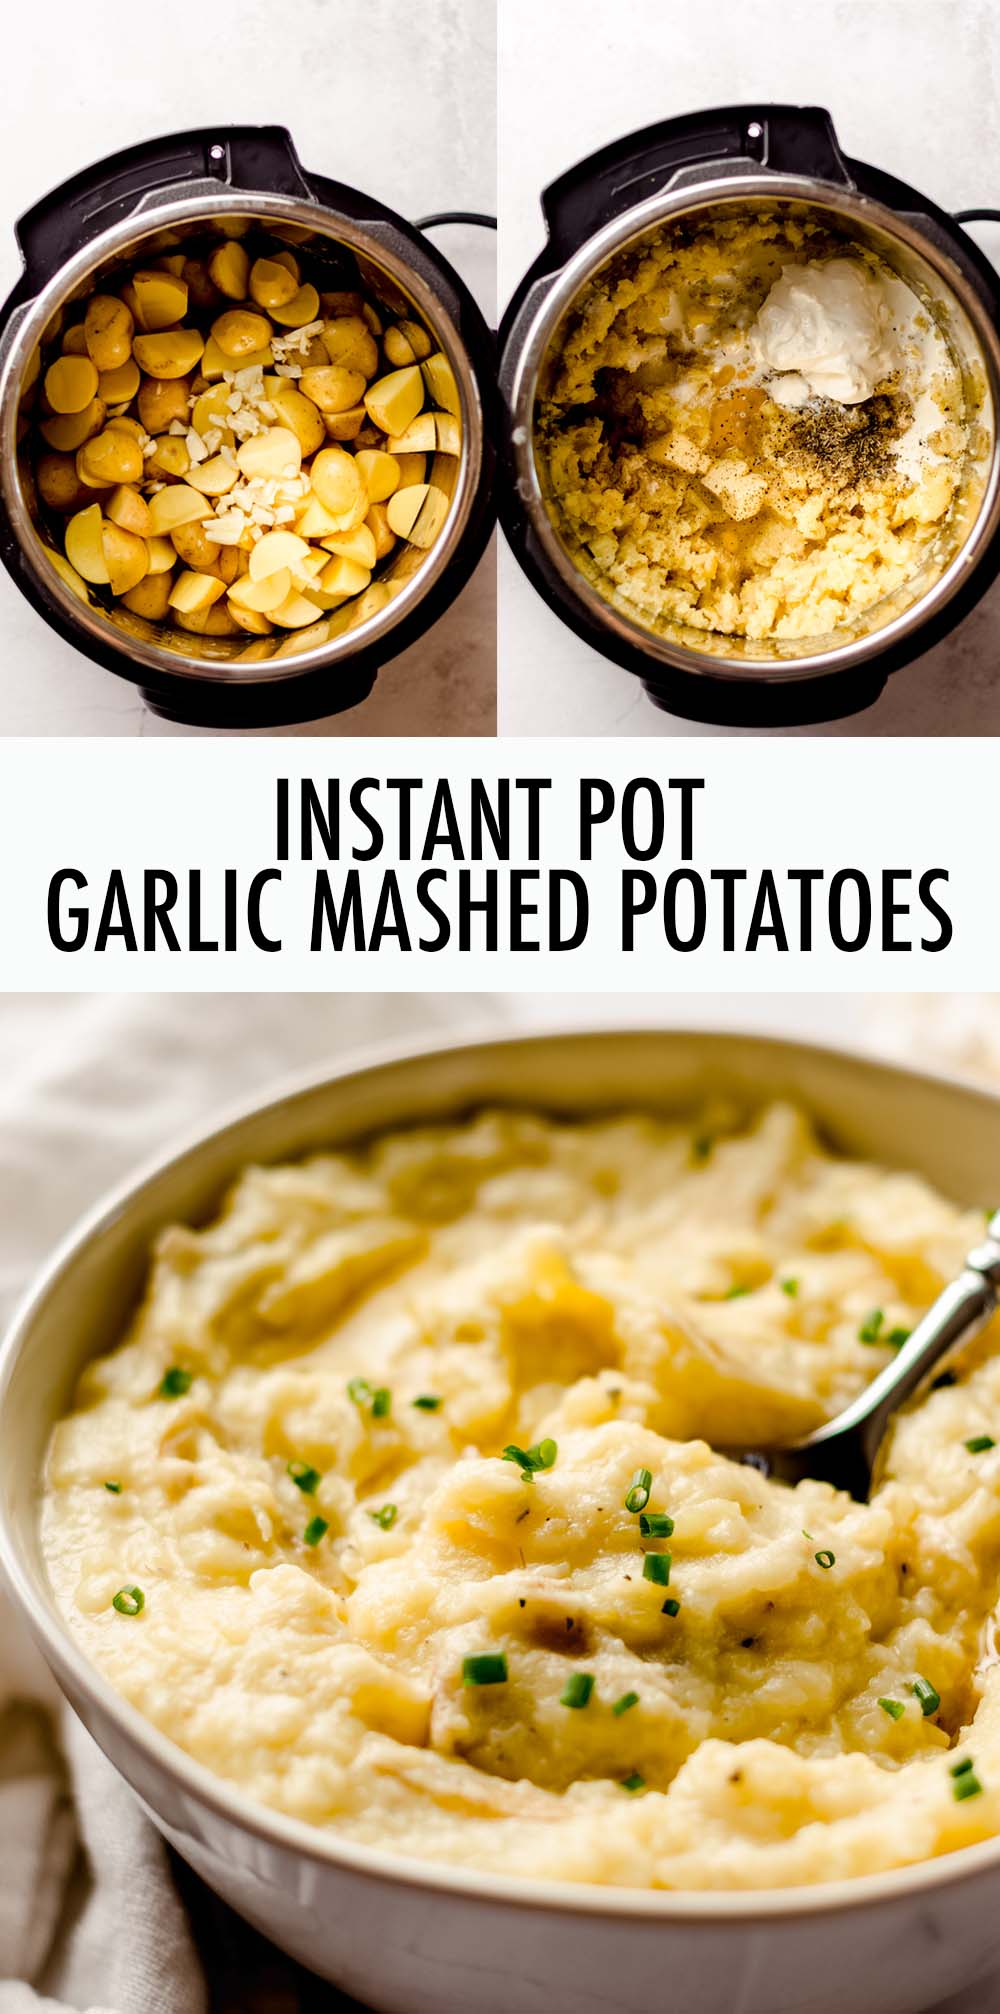 Just a few minutes of ingredient prep, then let your Instant Pot do the rest! These garlic mashed potatoes can be made creamy and smooth or textured and chunky. No matter how you like to eat them, you're going to love how simple these mashed potatoes are to make.